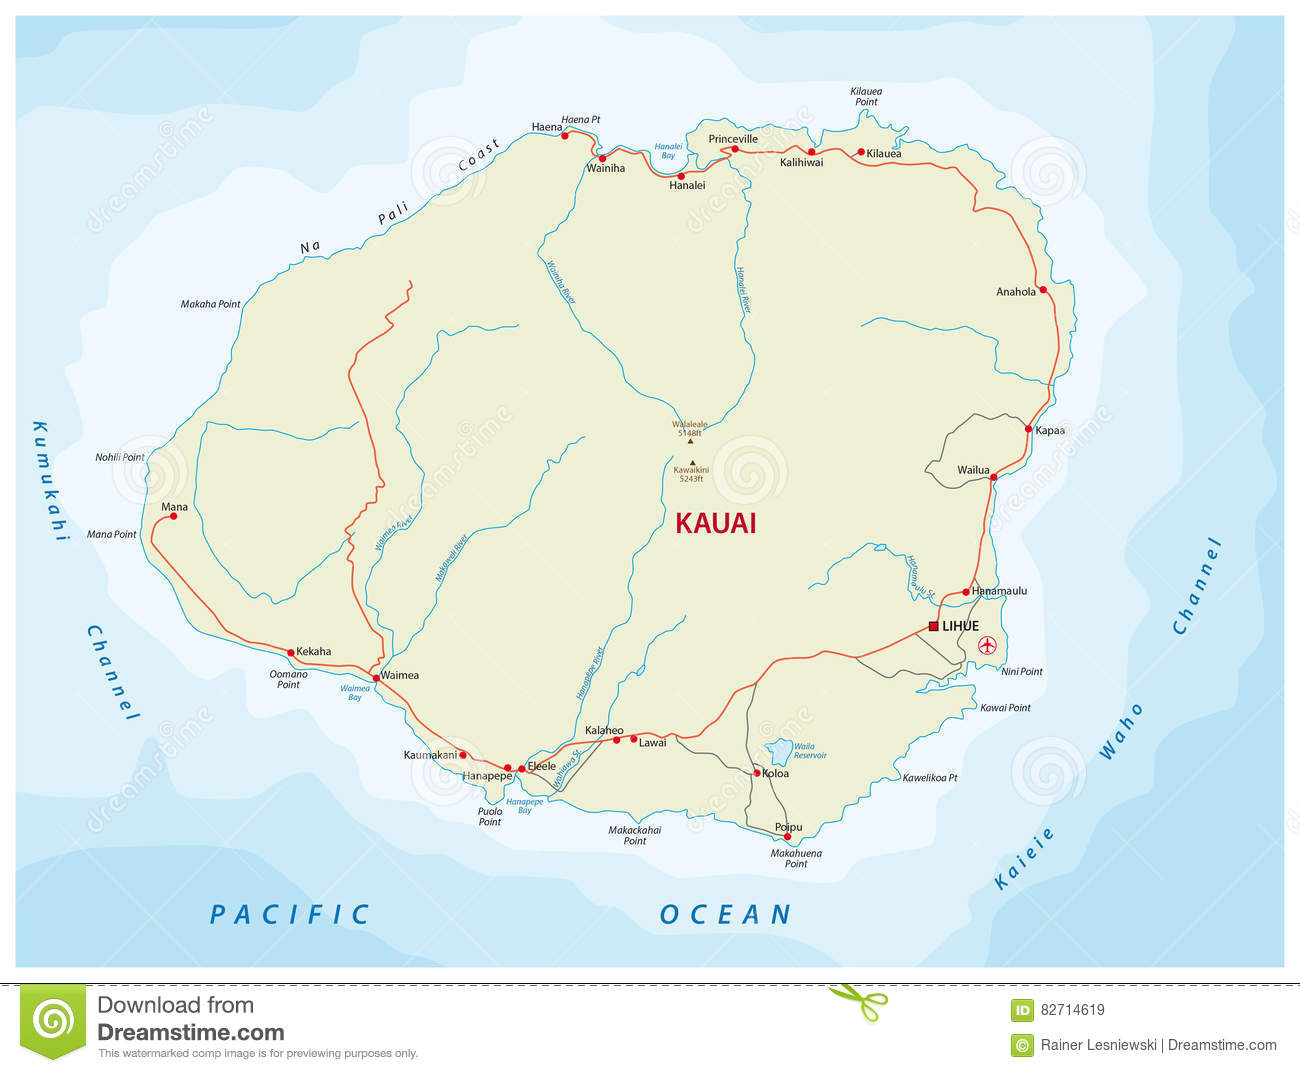 Kauai road map stock vector. Illustration of volcano - 82714619 on map of glasgow, map of johannesburg, map of cedar rapids, map of miami, map of madrid, map of lansing, map of norfolk, map of new york, map of salt lake city, map of kona, map of lanai city, map of porto, map of florence, map of kahului, map of ontario, map of hilo, map of honolulu, map of singapore, map of hawaiian islands, map of cancun,